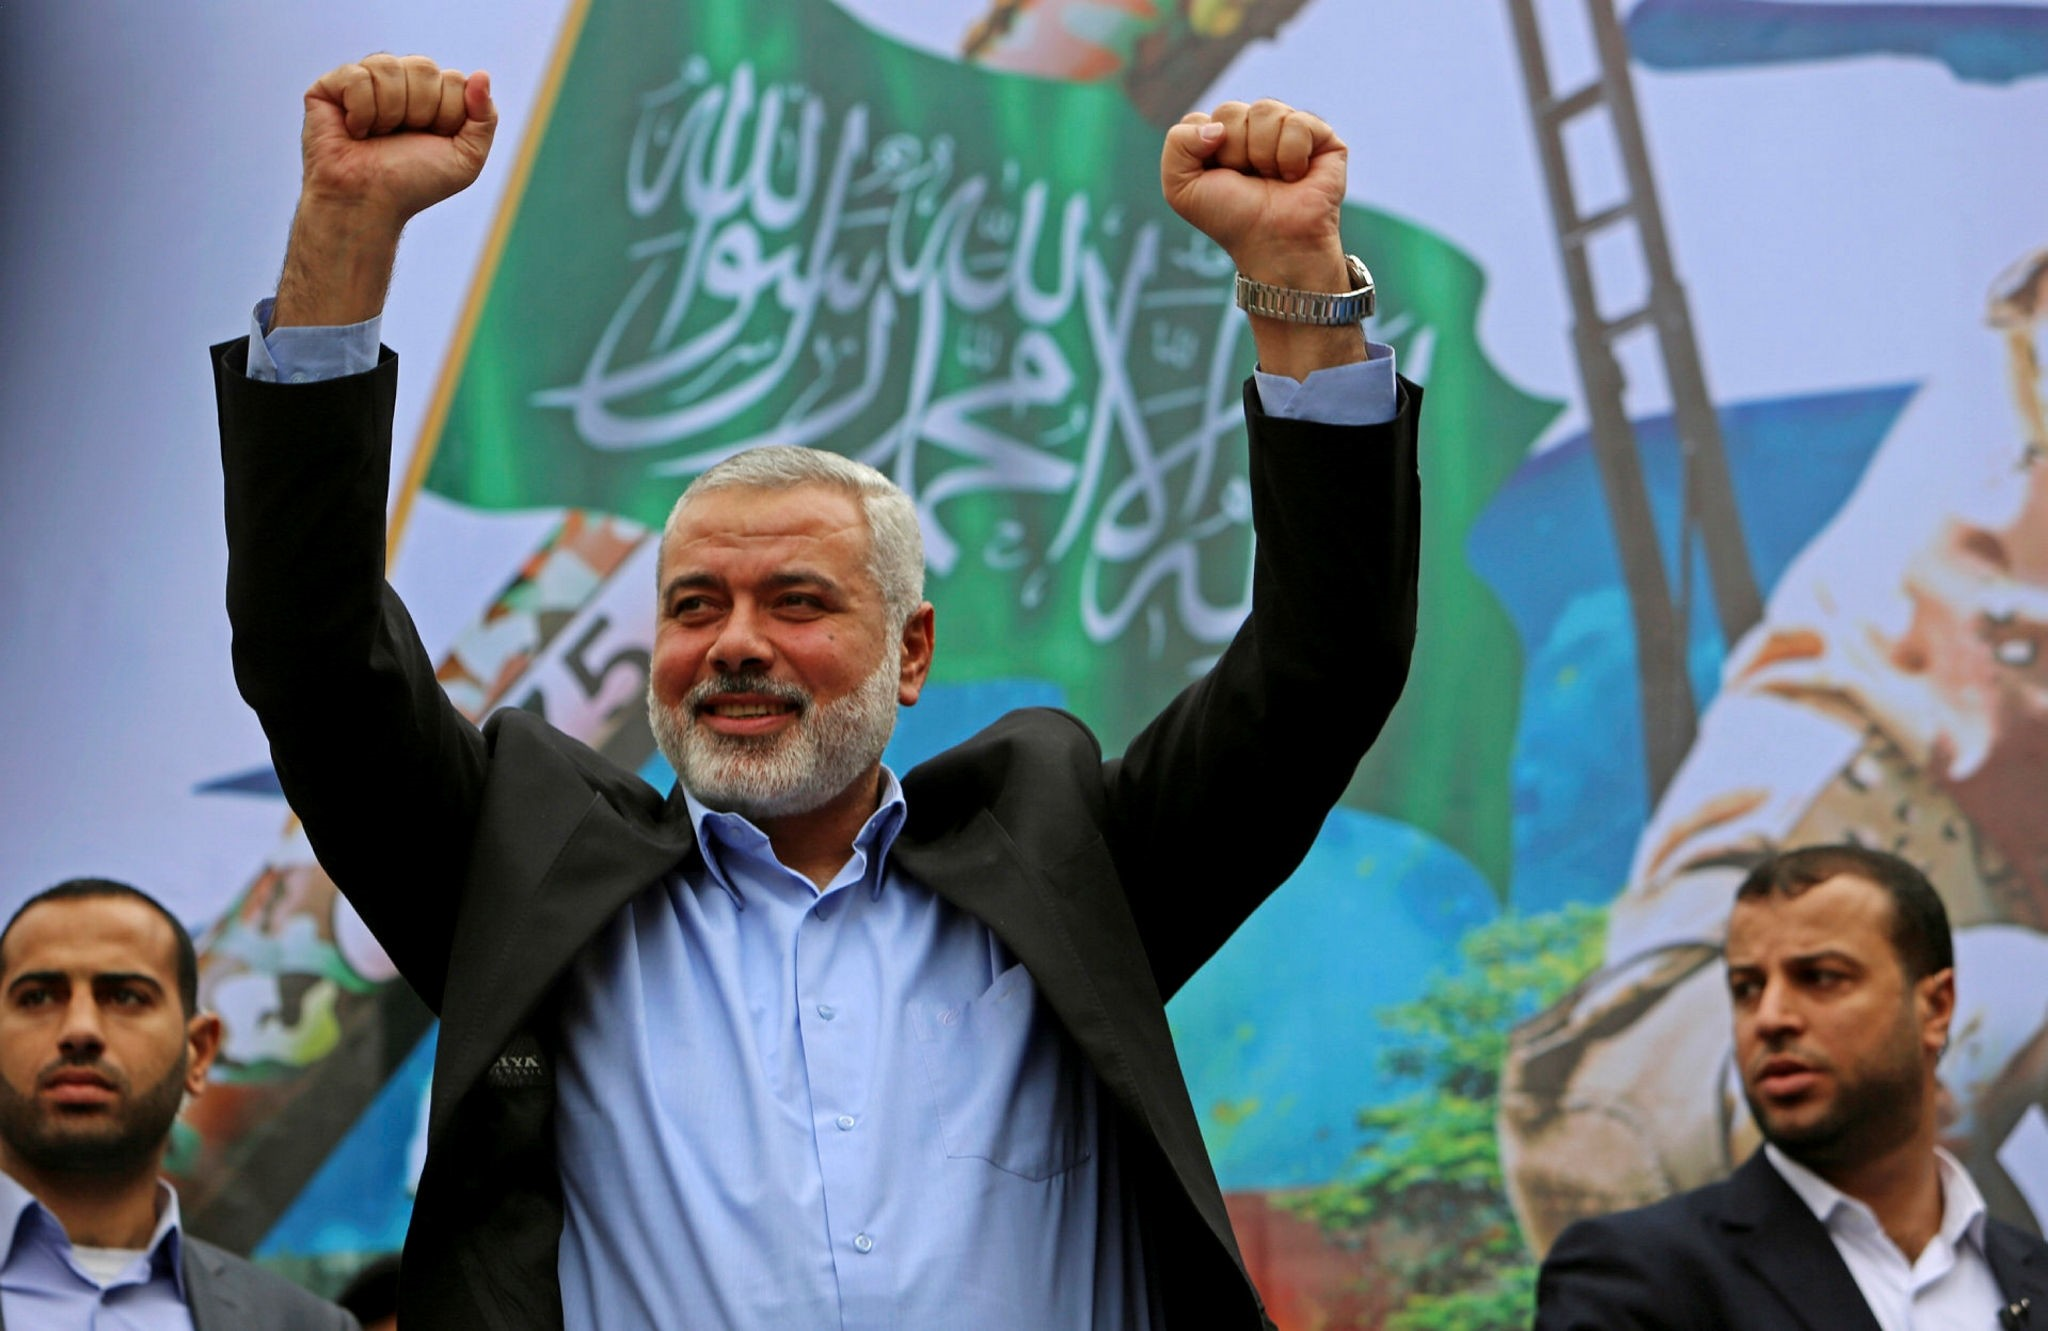 In this Friday, Dec. 12, 2014 file photo, Hamas leader Ismail Haniyeh greets supporters during a rally to commemorate the 27th anniversary of Hamas in Jebaliya in the northern Gaza Strip. (AP Photo)